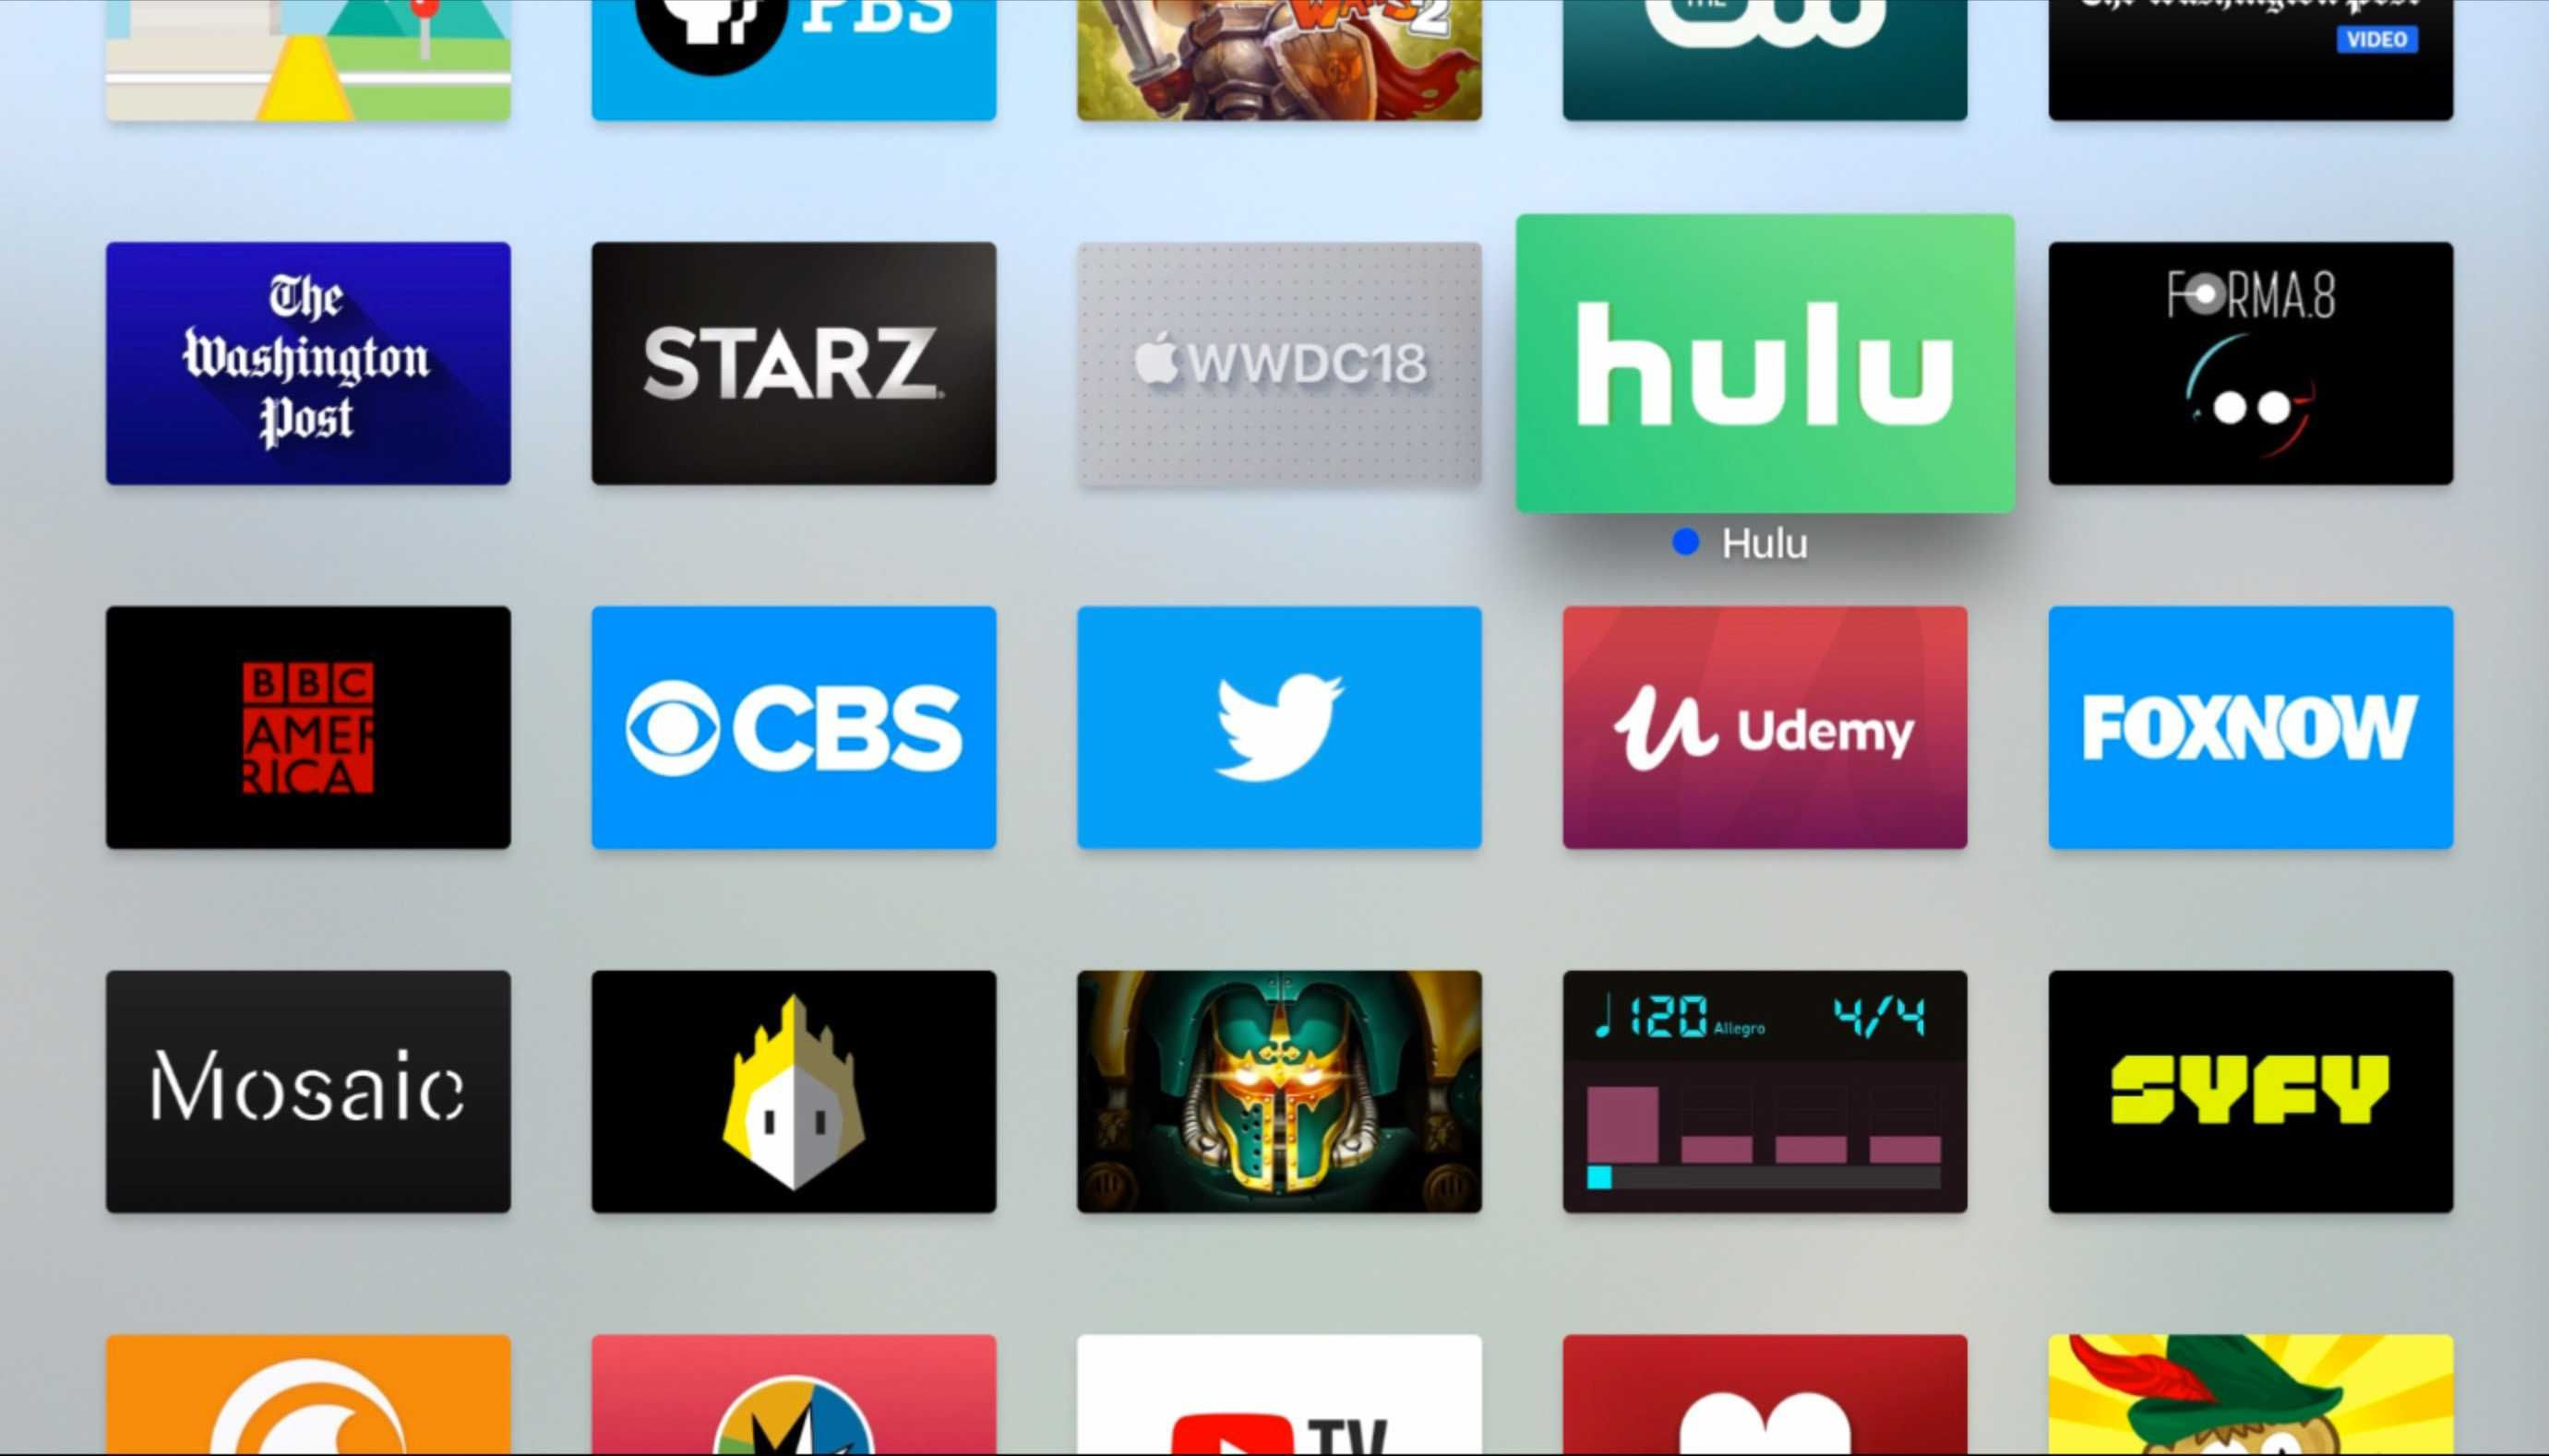 Hulu Movies Hulu Apps Samsung smart tv, Hulu, Streaming tv